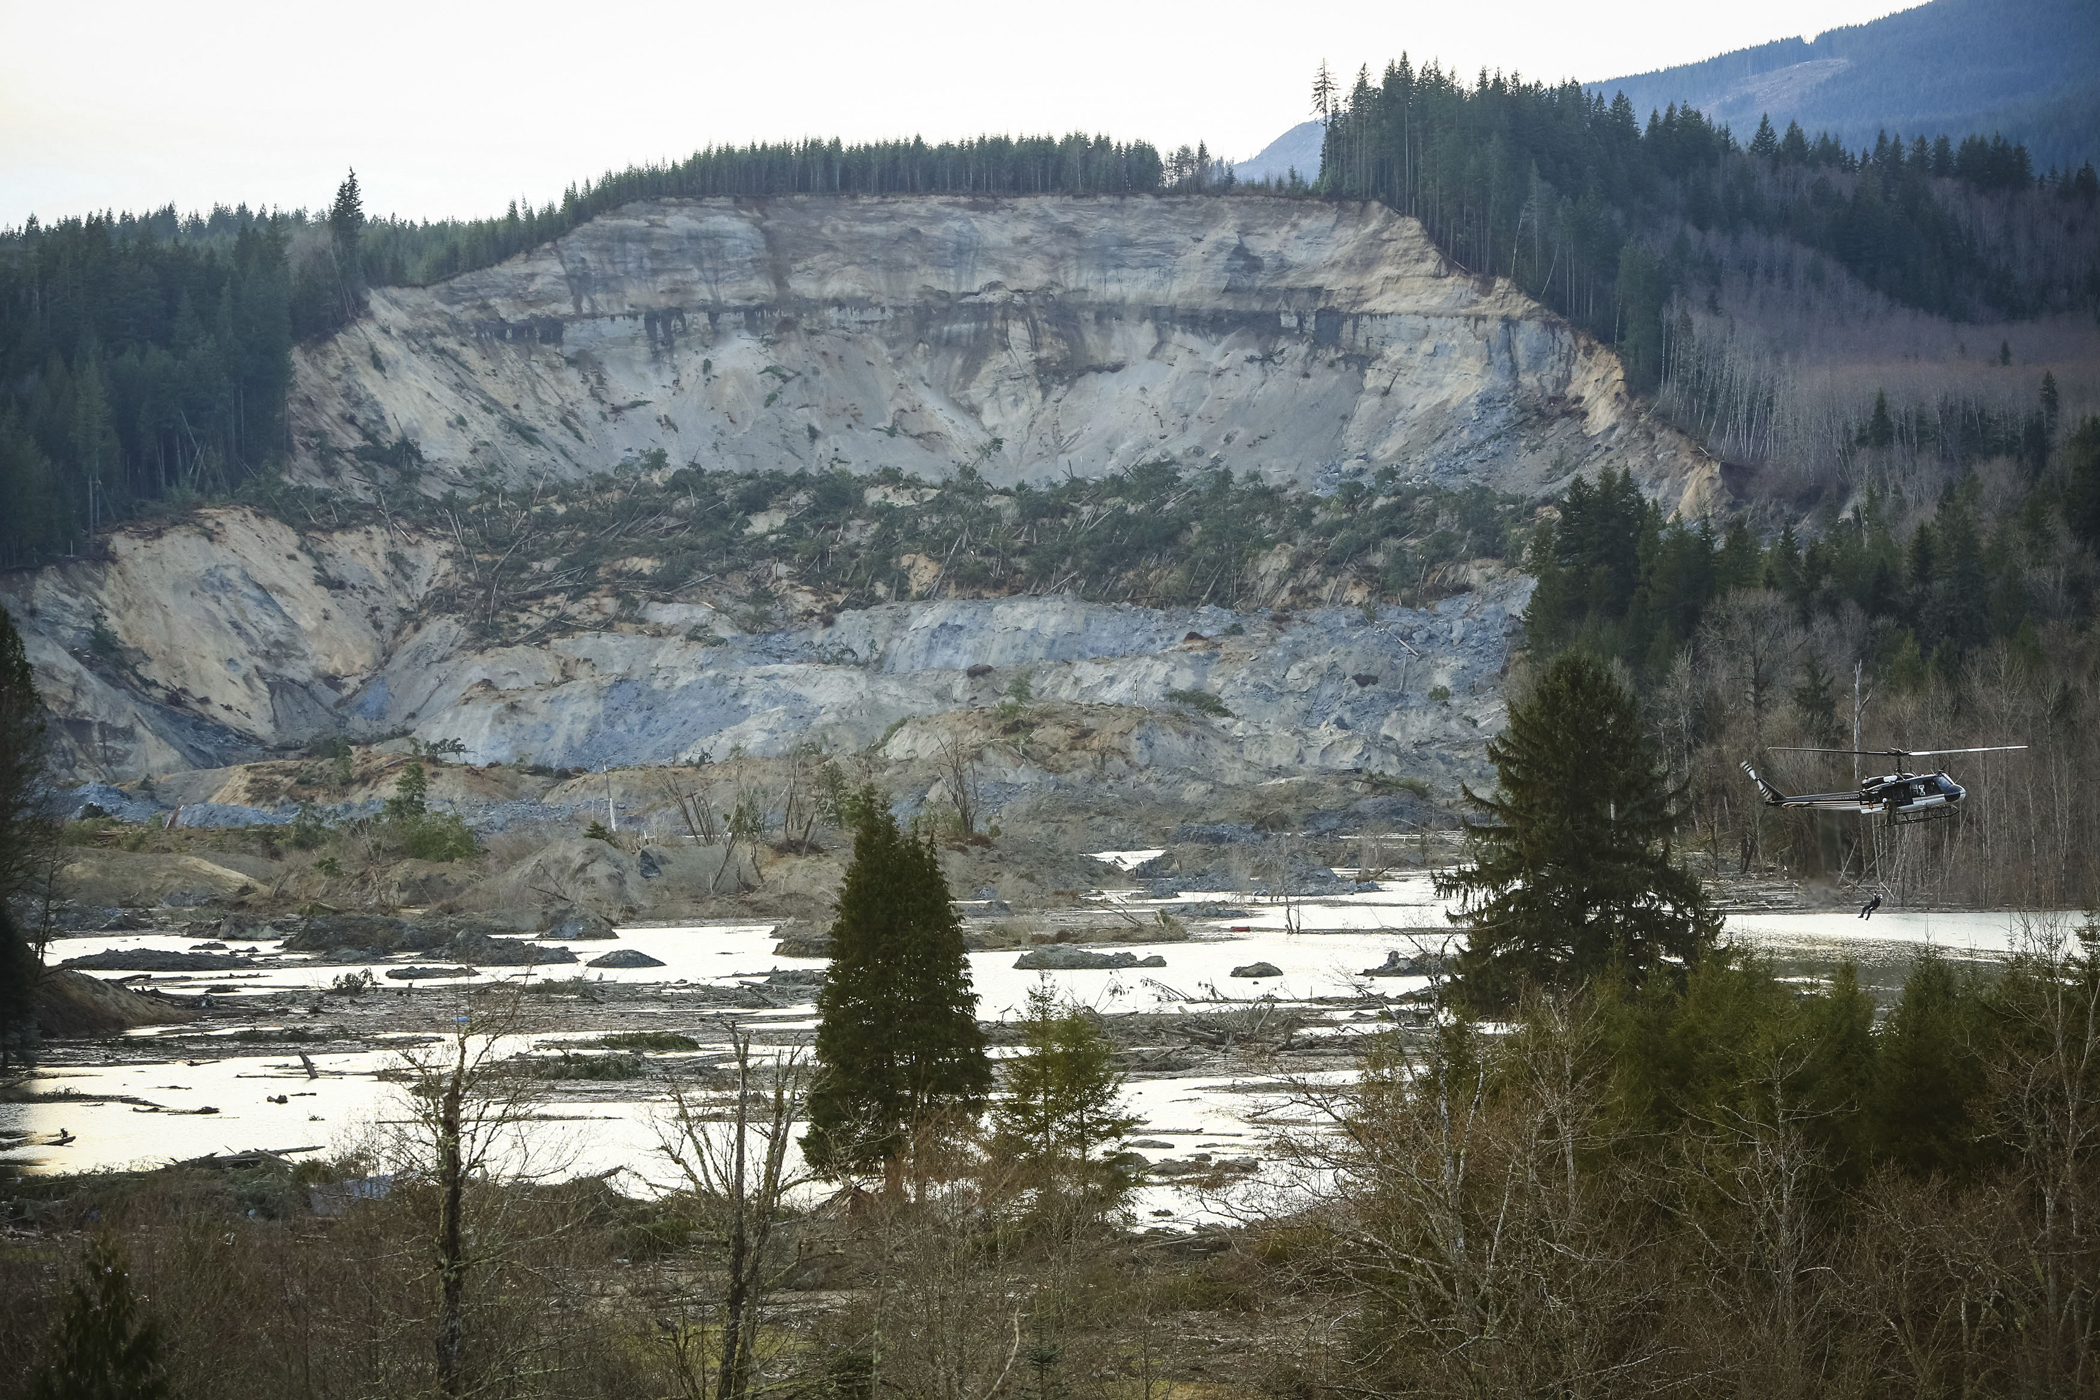 A rescue worker is lowered from a helicopter, right, near Oso, Wash, Monday, March 24, 2014.